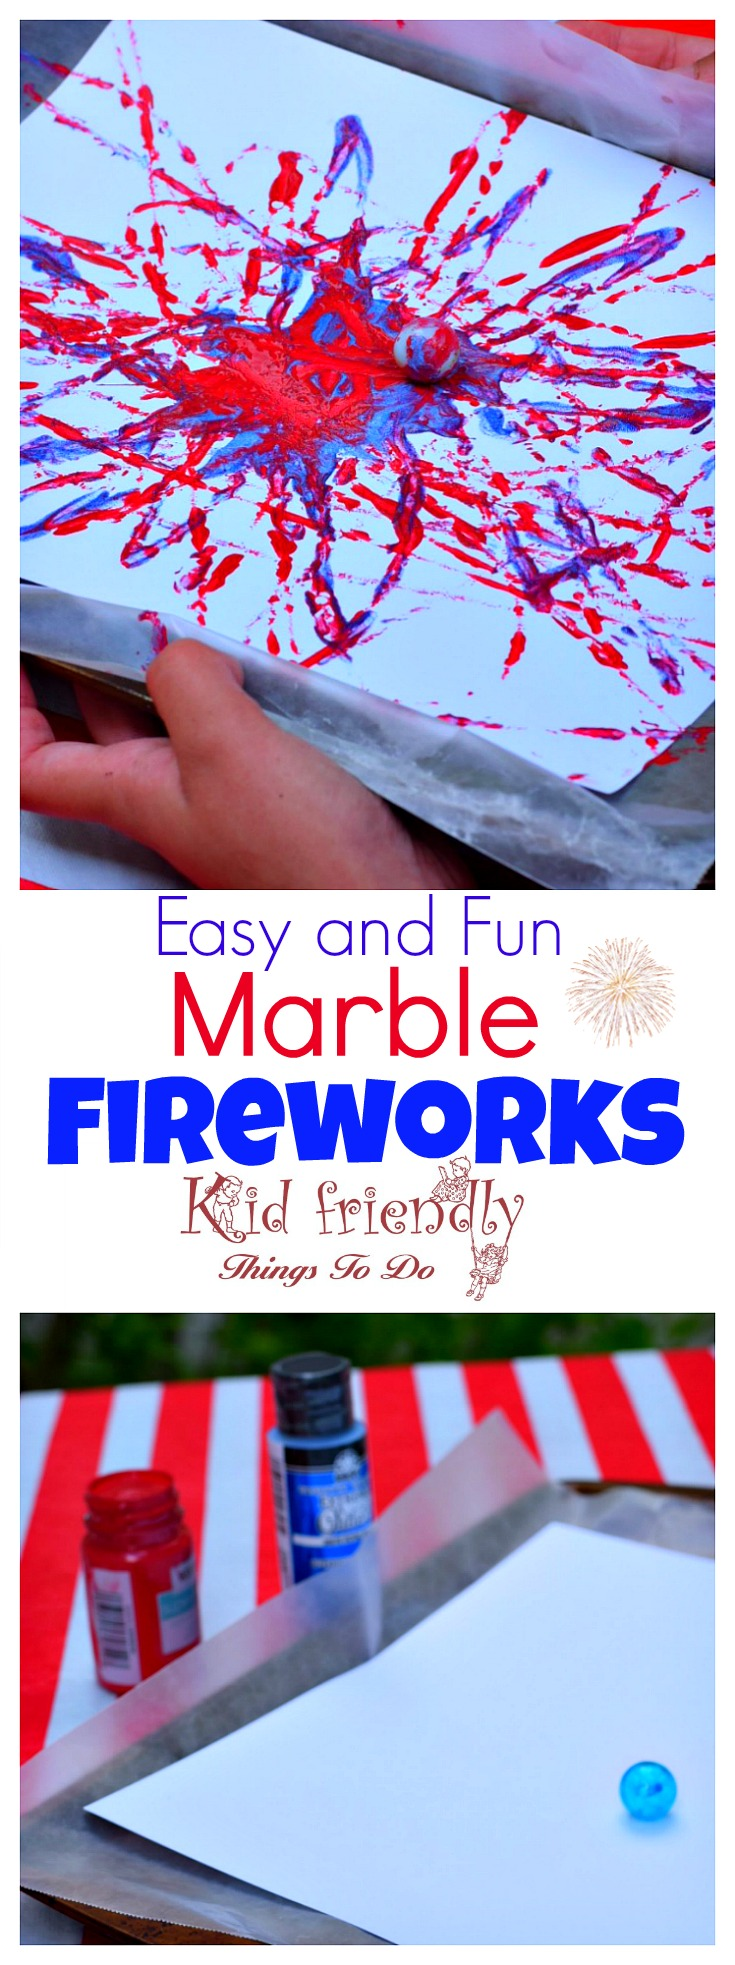 Fireworks Marble Painting Craft Easy and Fun for Kids - Perfect for patriotic holidays like the Fourth of July, Summer Bonfire Nights, and New Year's Eve with the kids! www.kidfriendlythingstodo.com